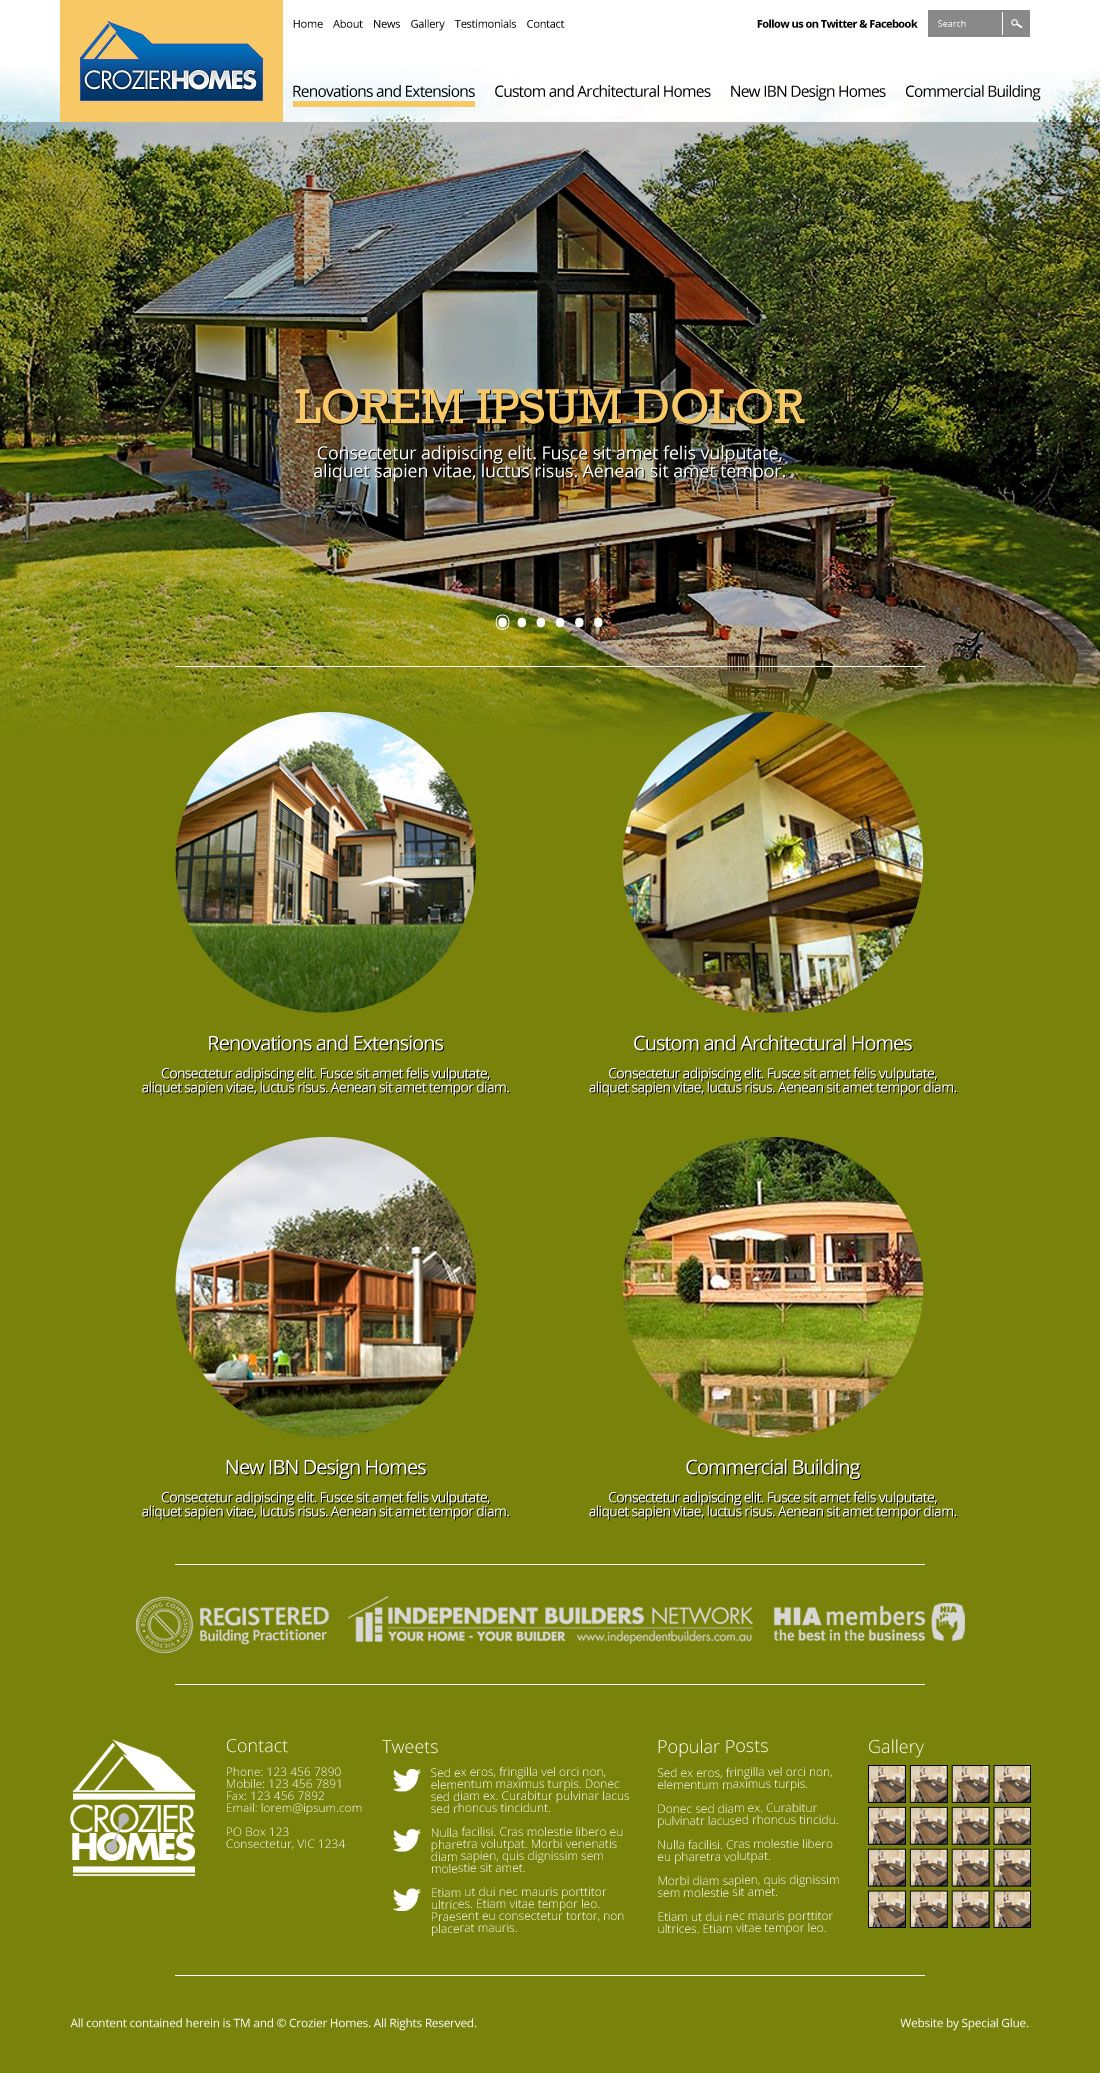 Website design for Crozier Homes.